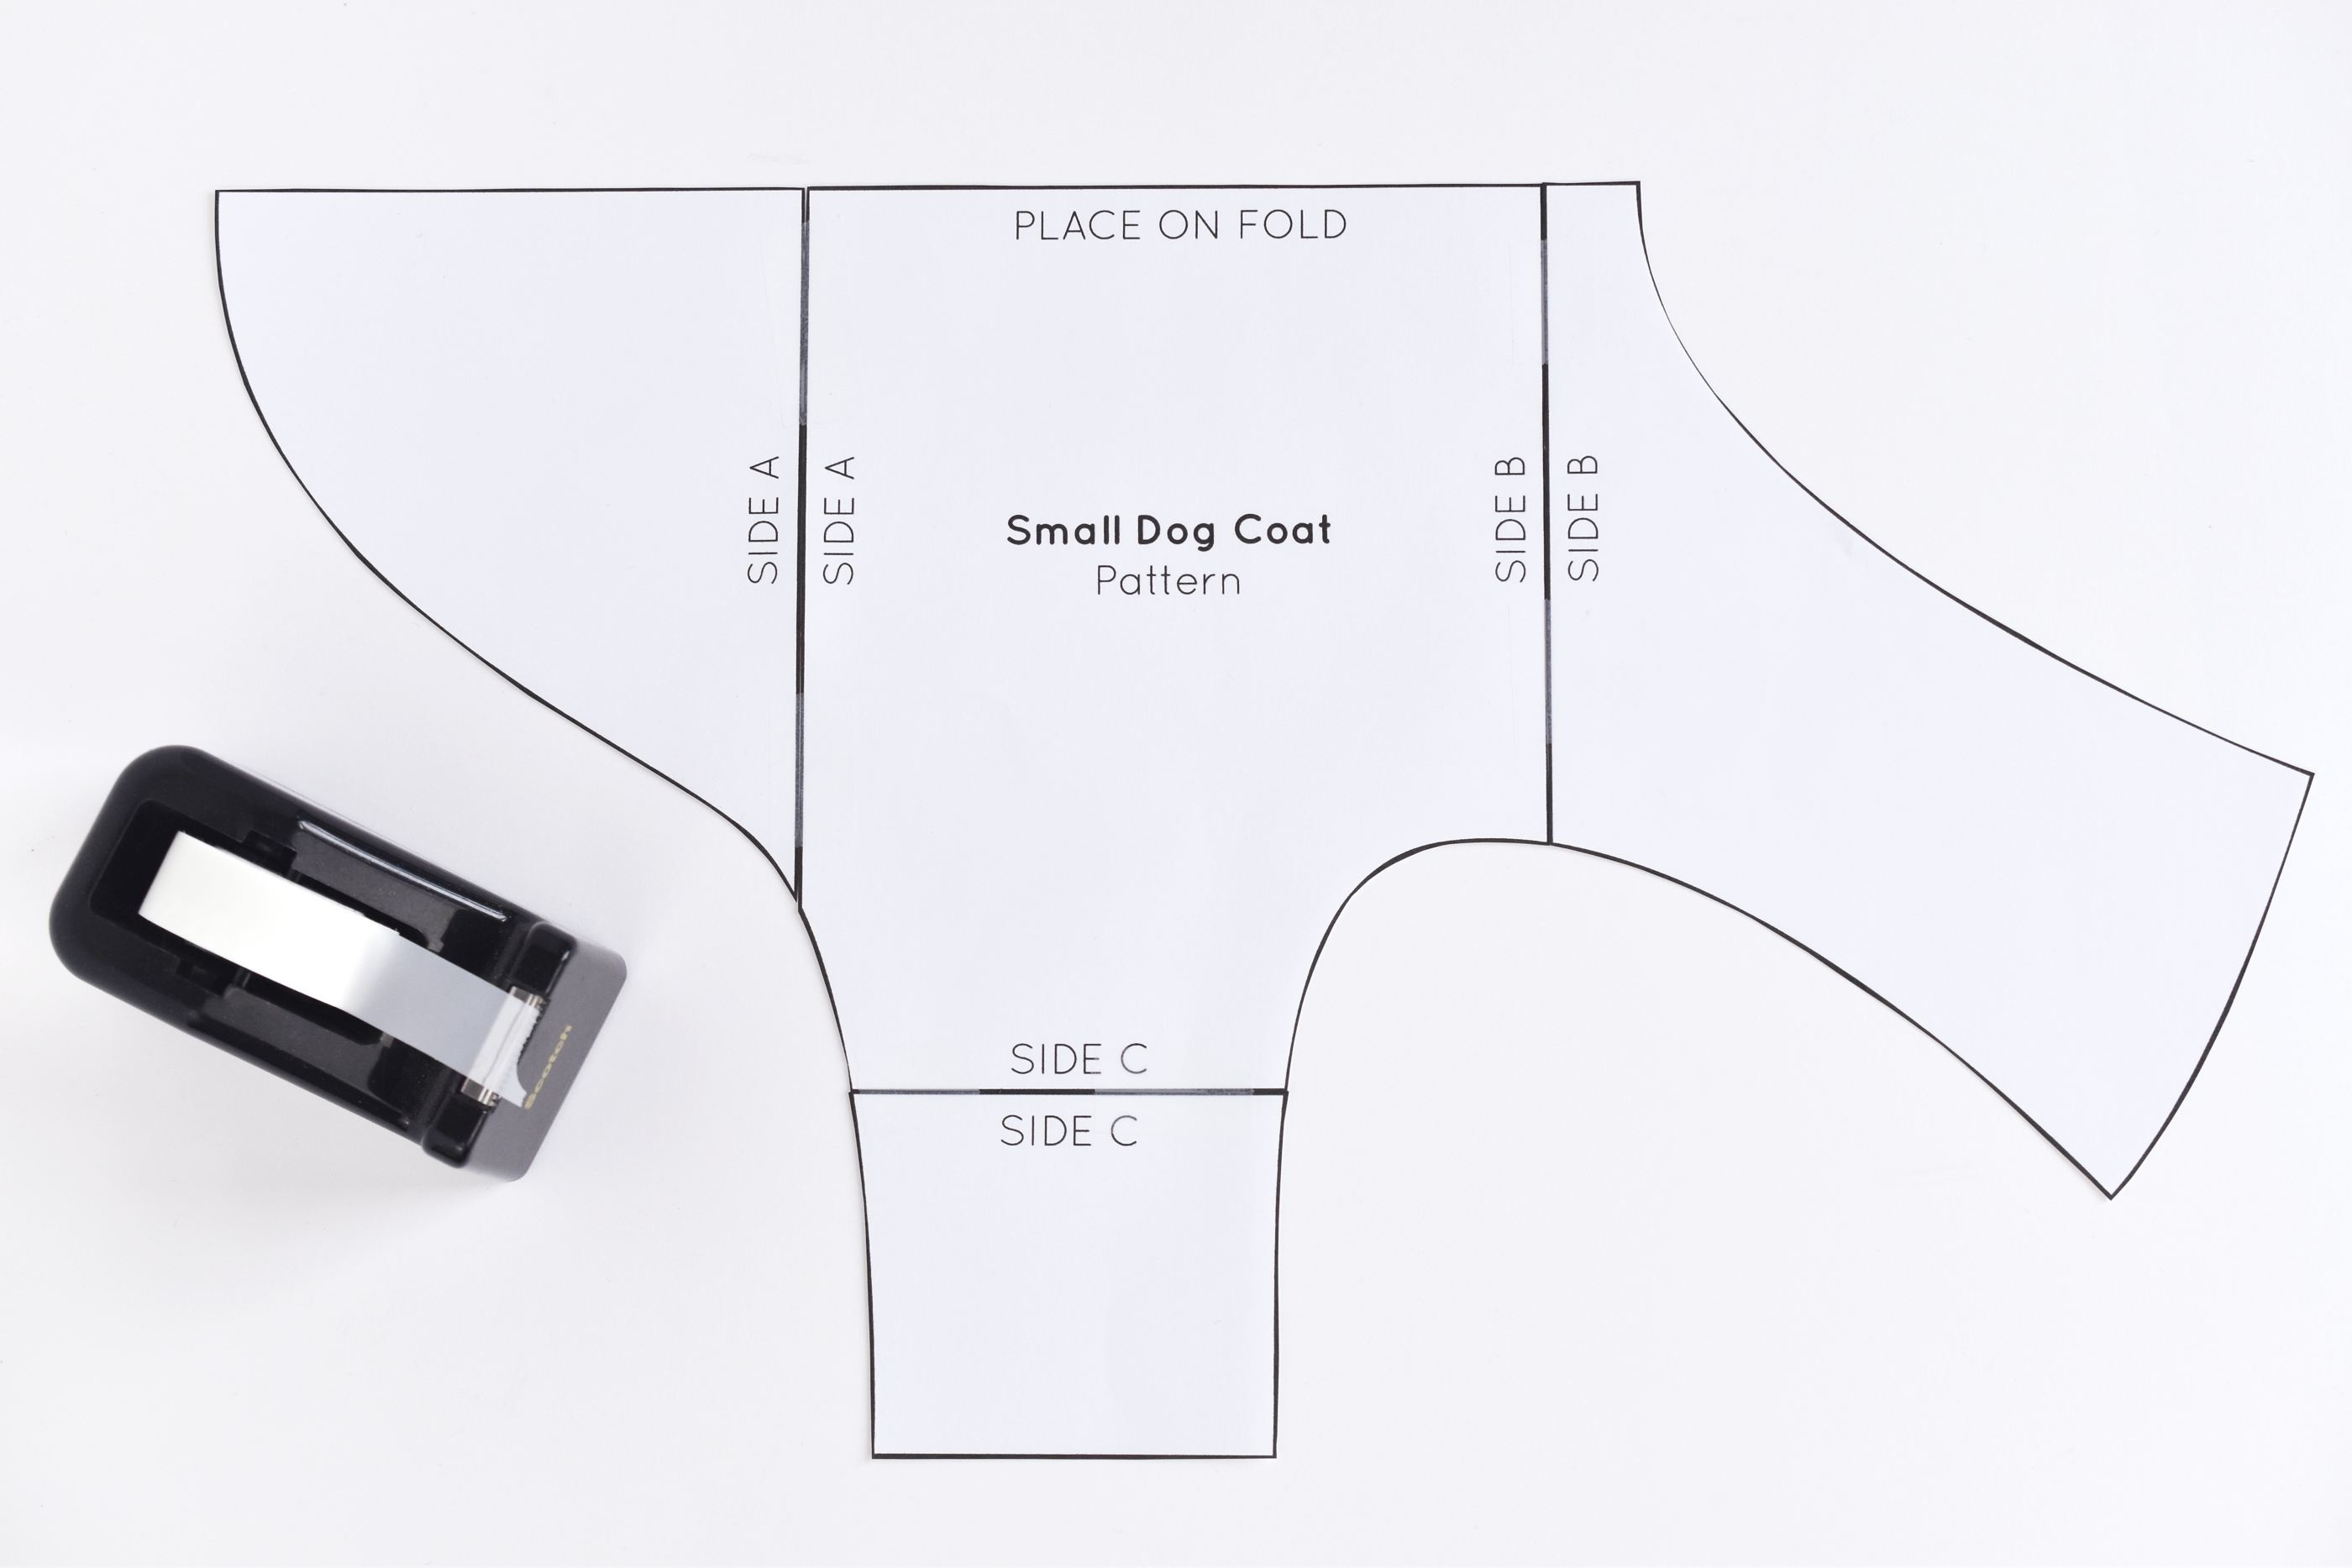 Free Sewing Pattern For A Warm, Weatherproof Dog Coat - Free Printable Sewing Patterns For Dog Clothes